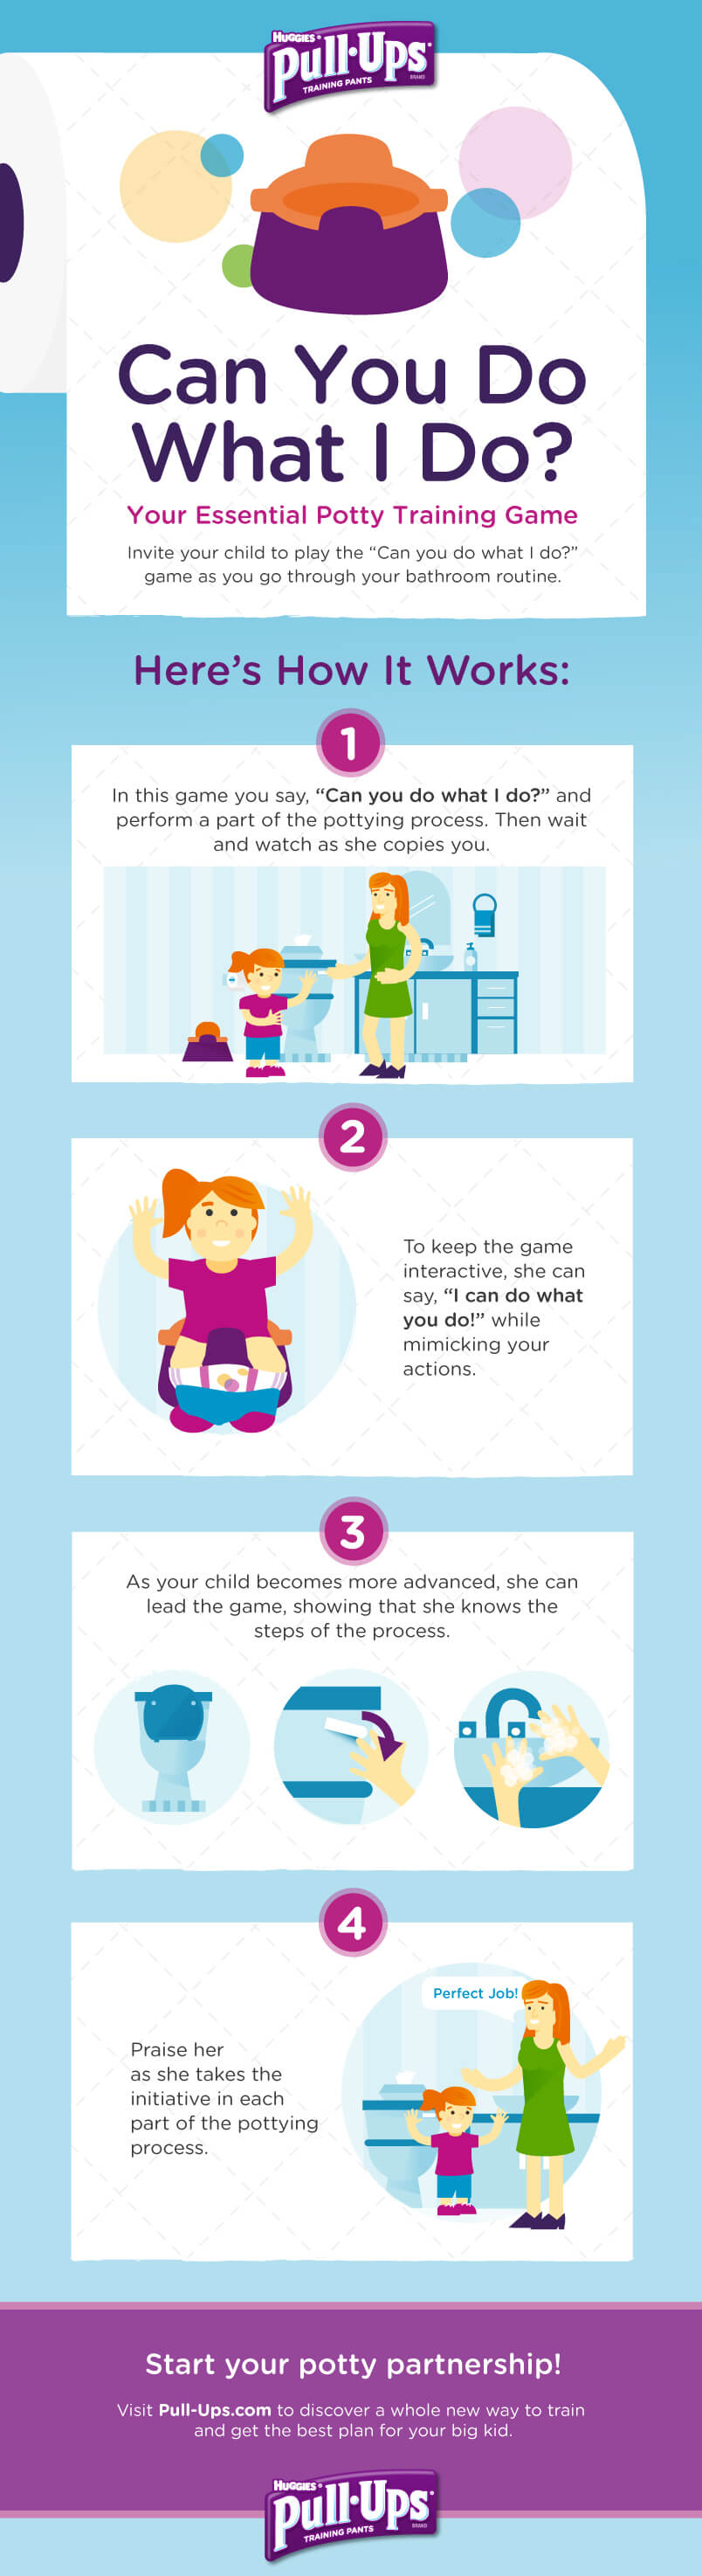 Infographic showing a step by step look on how to play can you do what I do potty training game